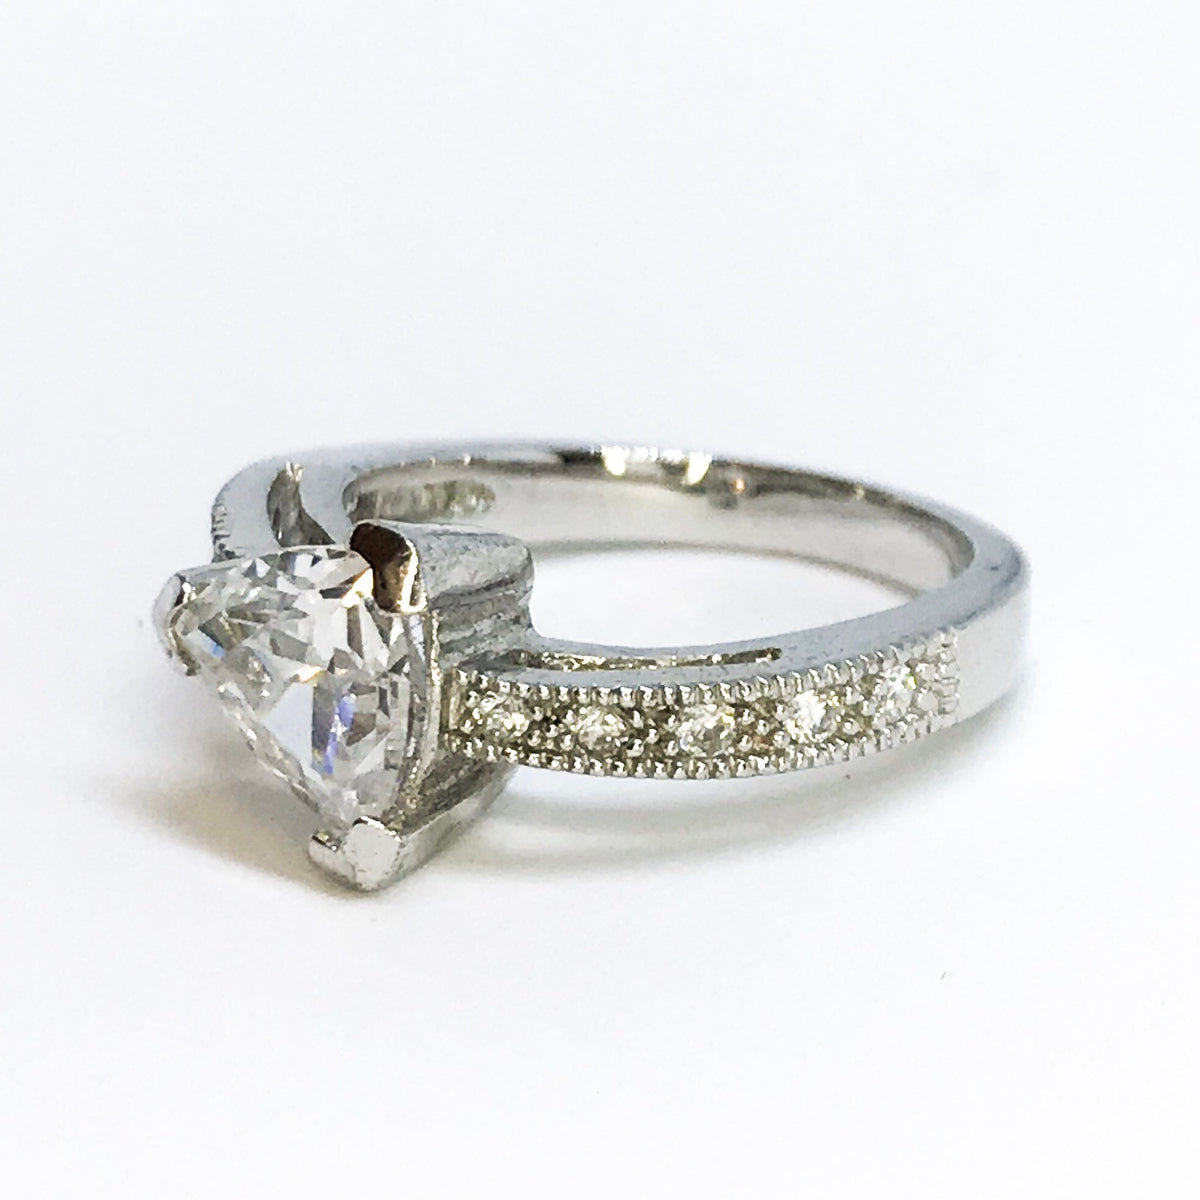 NEW 14K White Gold Layered on Sterling Silver Triangle Detailed Ring